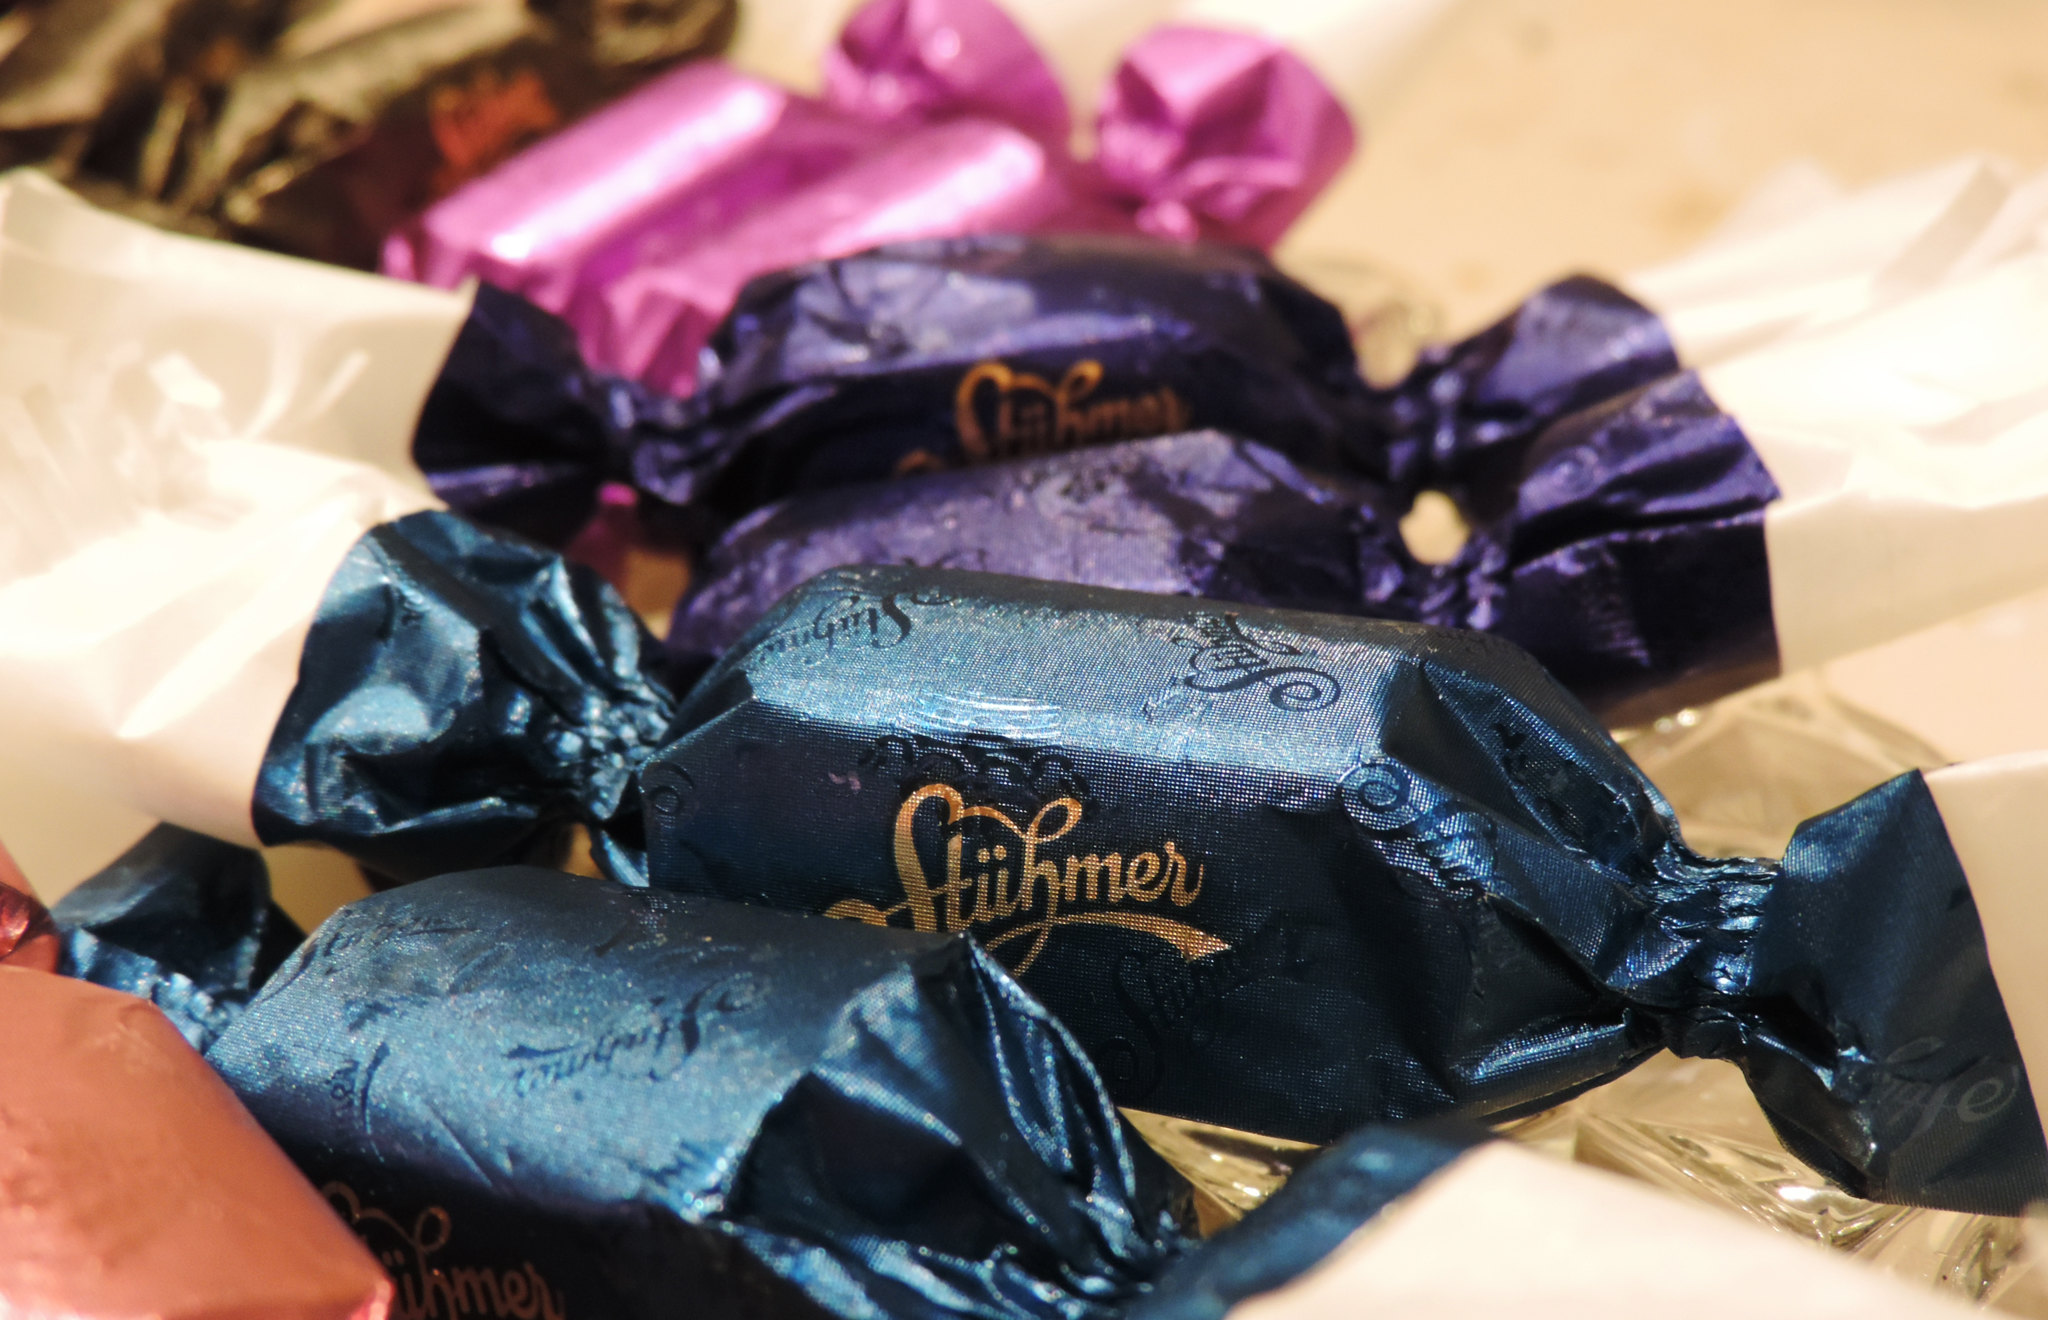 Parlor candy - Christmas in Hungary